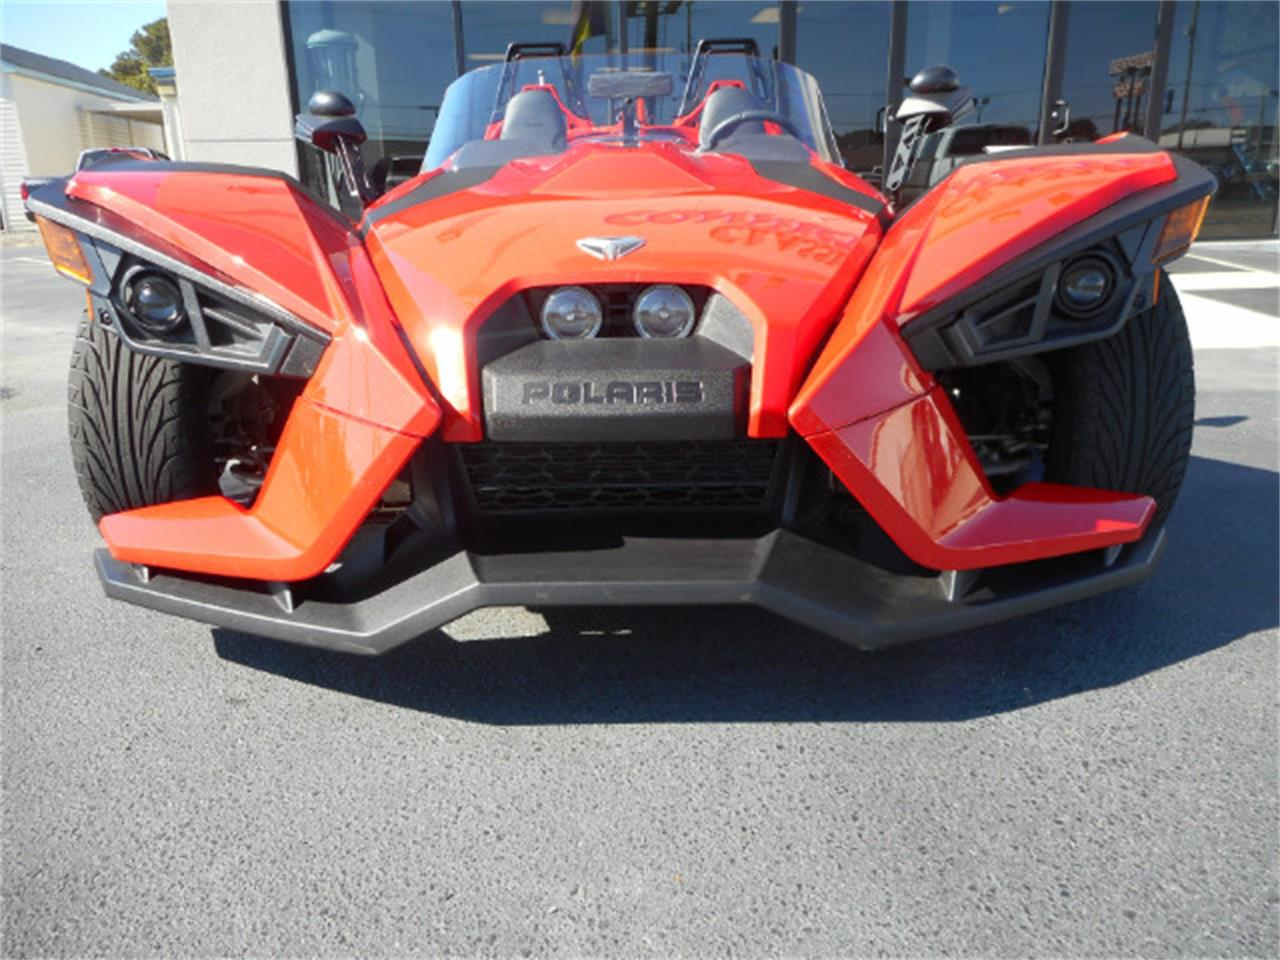 Large Picture of 2015 Polaris Slingshot - $18,999.00 Offered by Classic Connections - JOAT